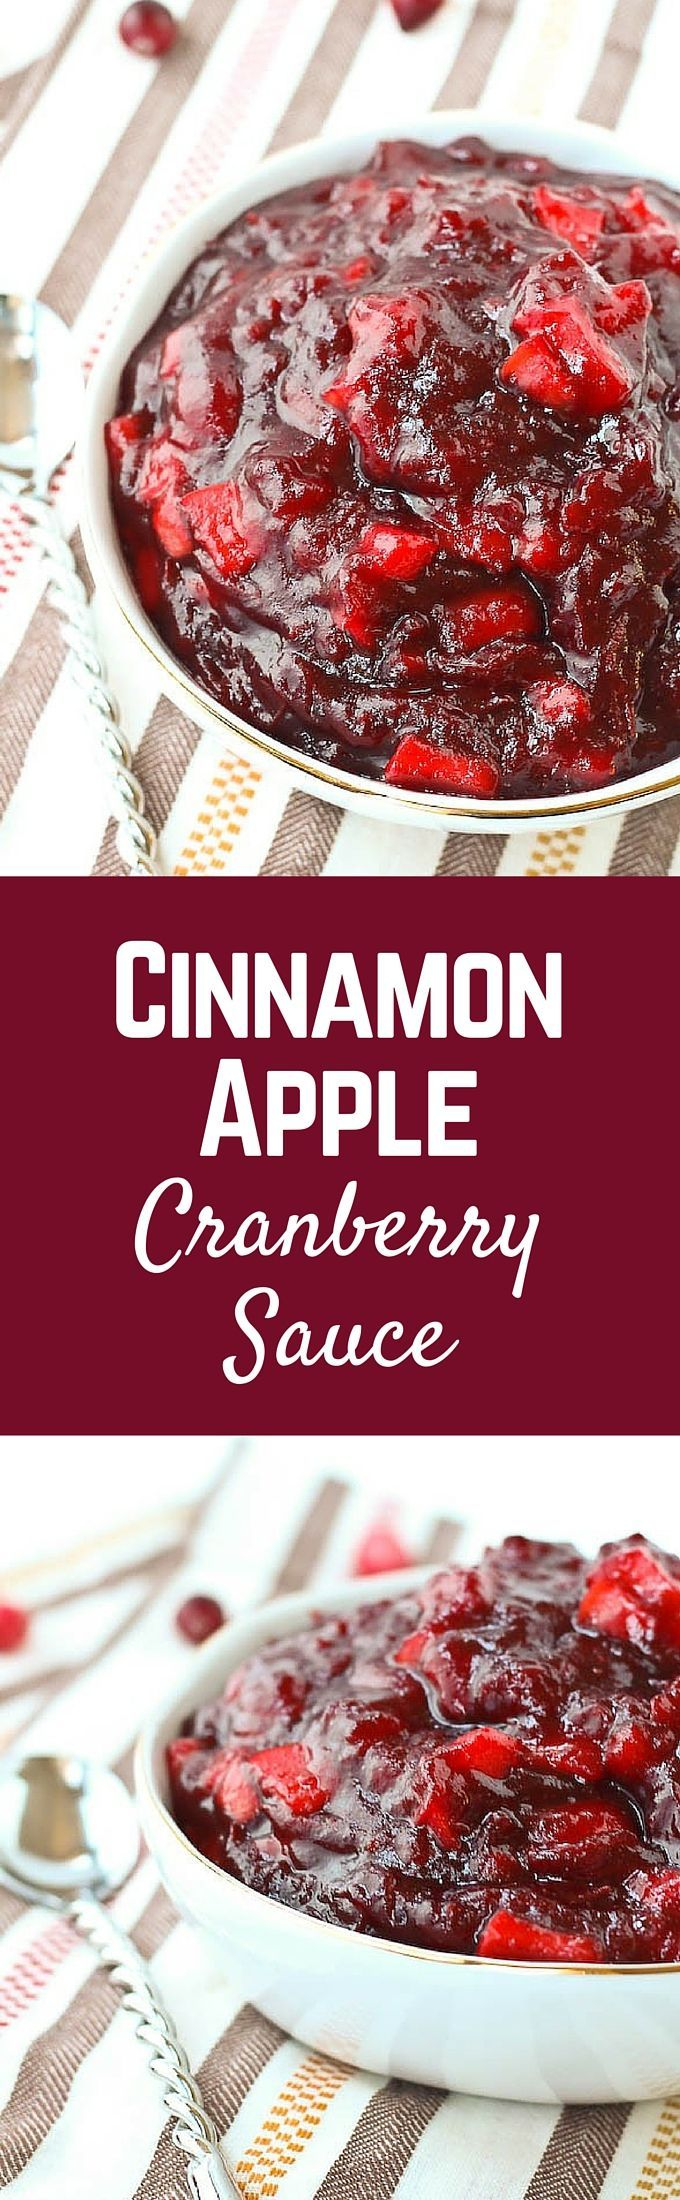 Don't settle for cranberry sauce from a can - this flavorful cinnamon apple cranberry sauce is super simple to make and can even be made a day or two in advance! Get the easy Thanksgiving recipe on http://RachelCooks.com!